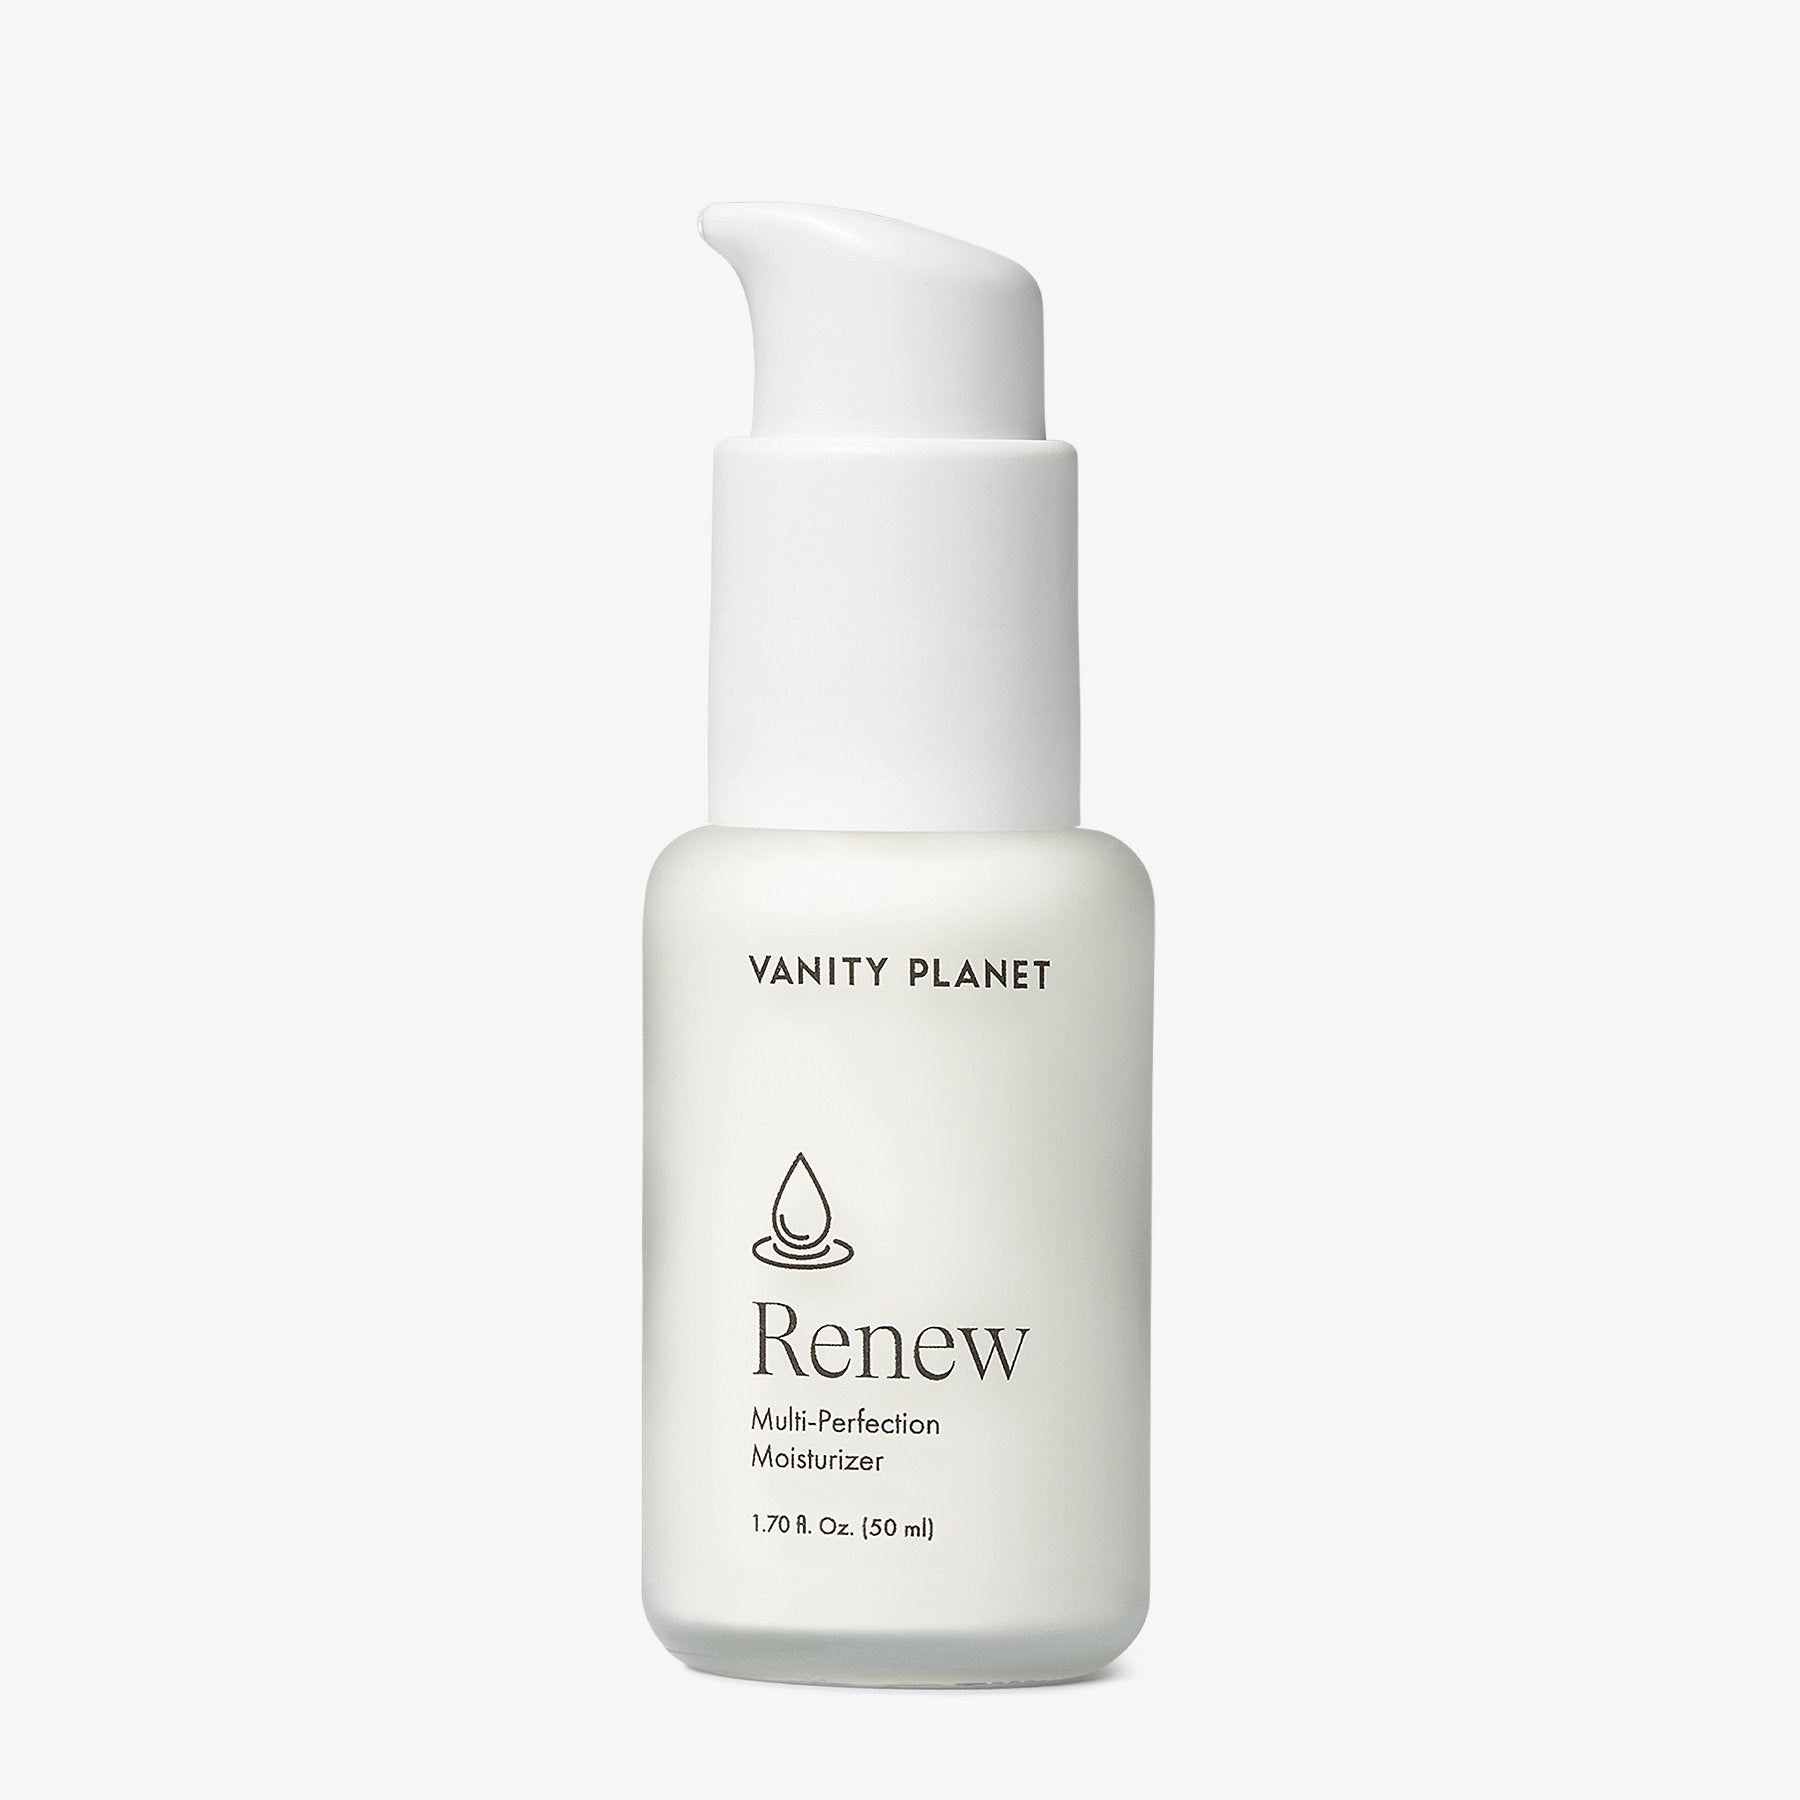 Renew | Multi-Perfection Moisturizer.